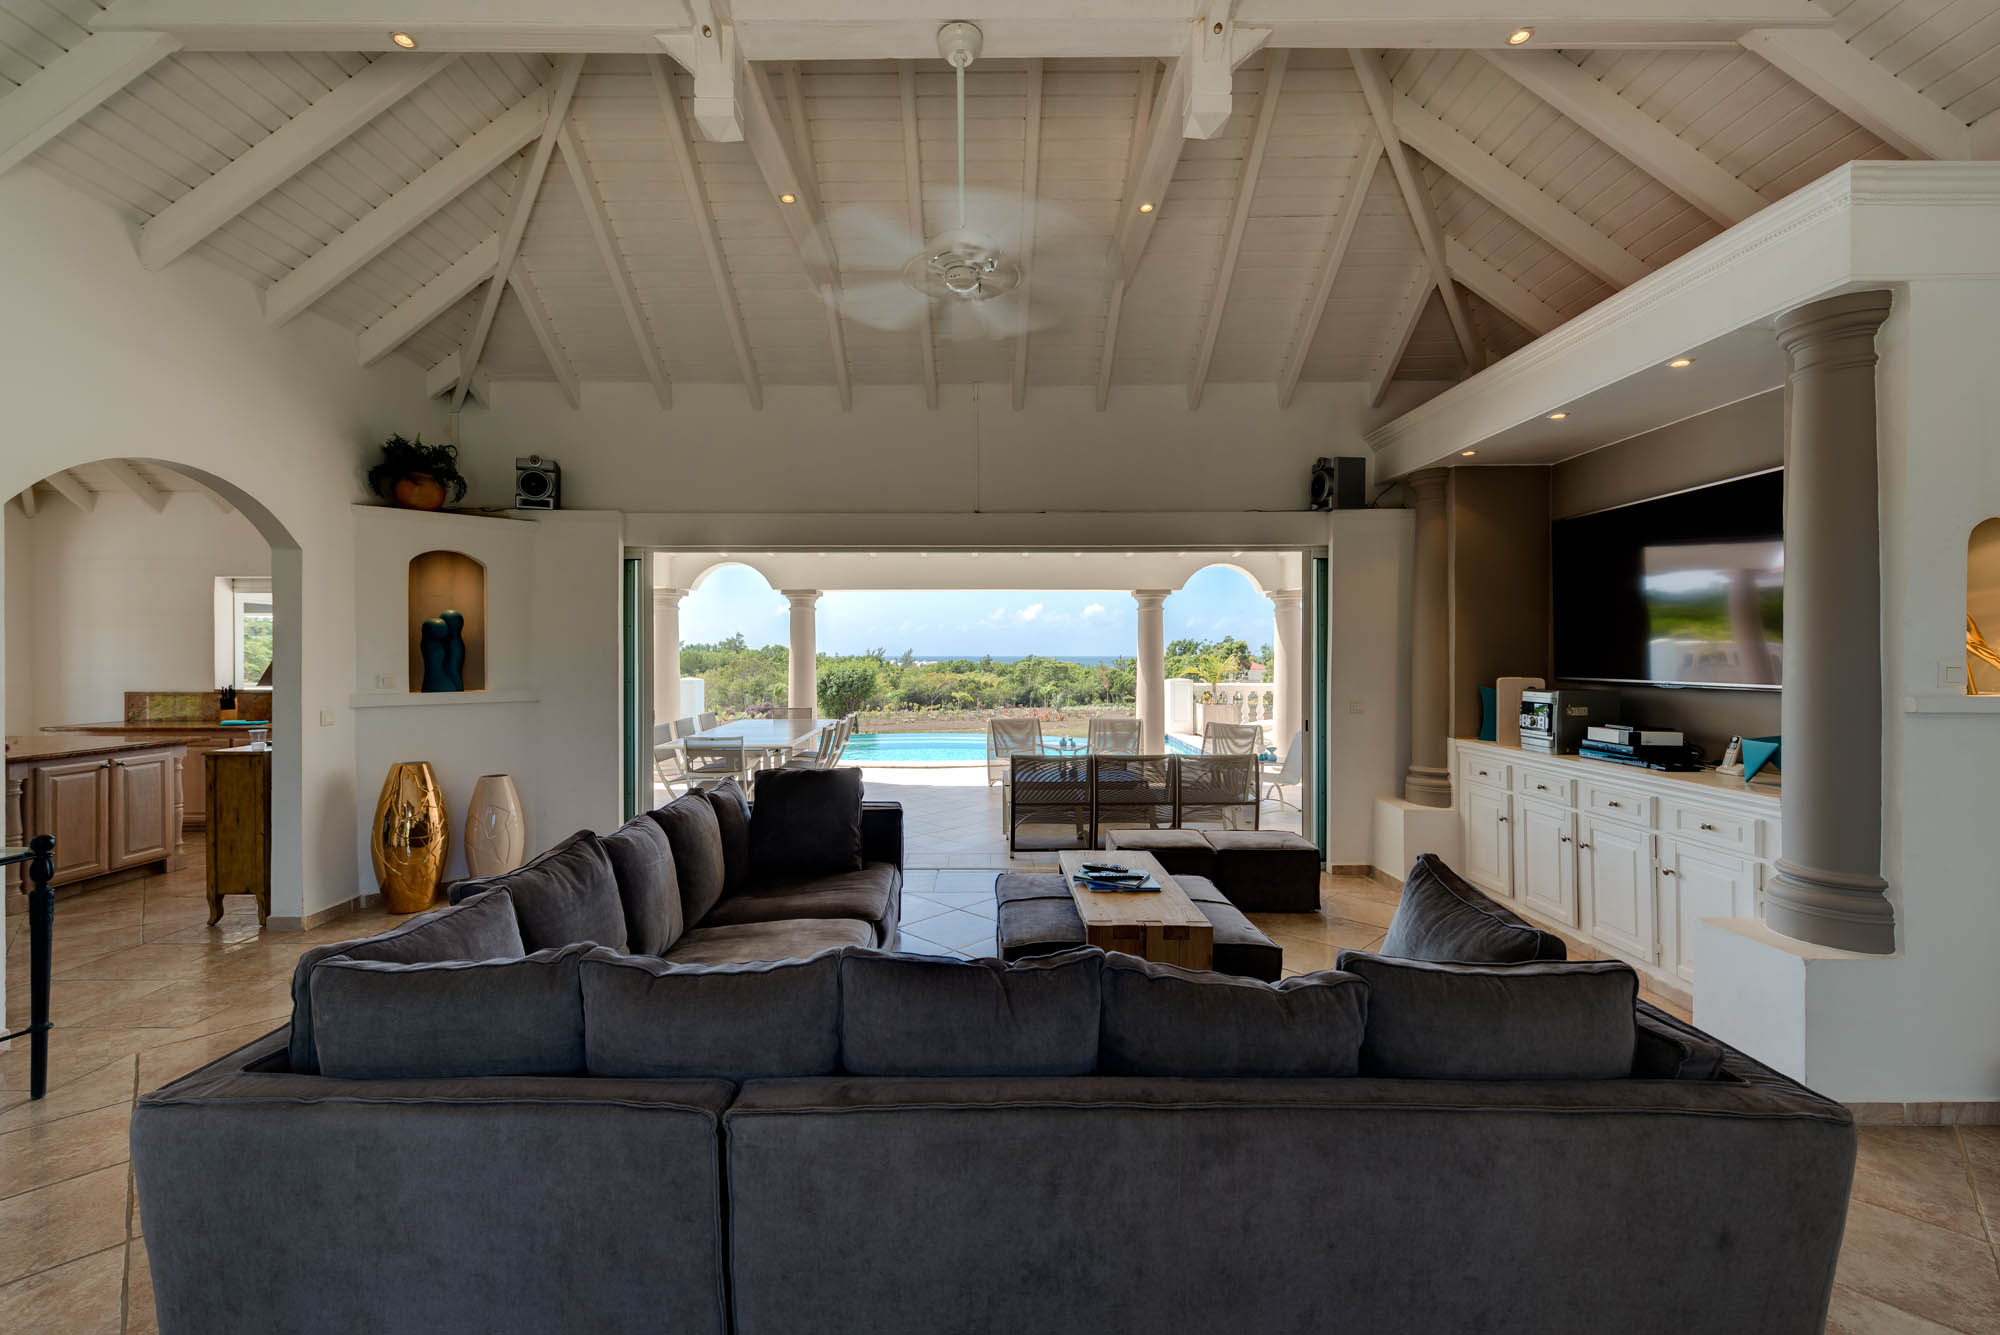 The comfortable living area of this Saint Martin vacation rental villa opens onto the terrace and a large gourmet kitchen that looks over the swimming pool.